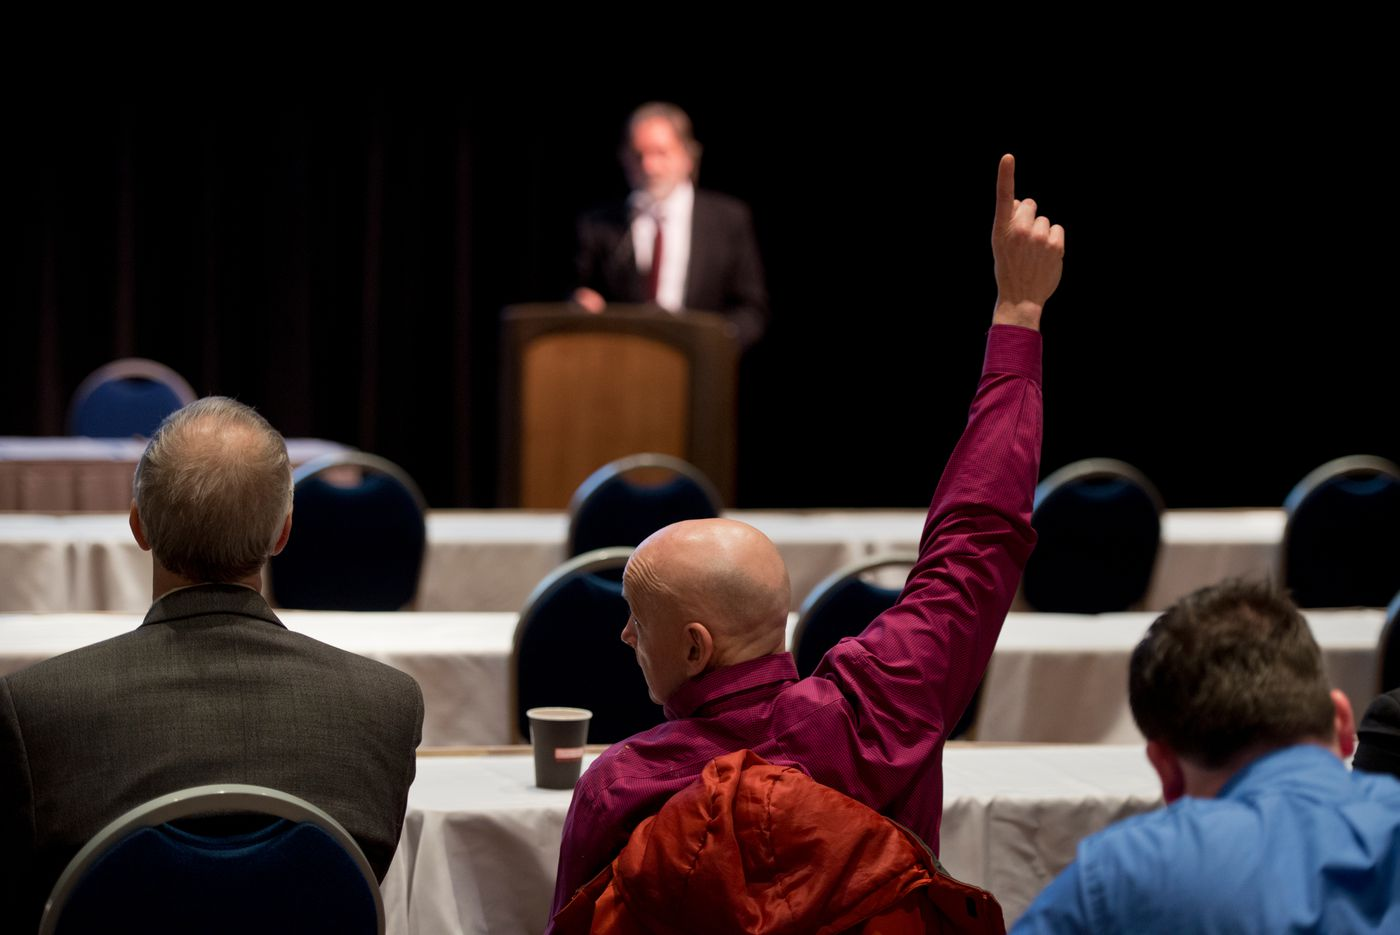 Rep. Dan Ortiz of Ketchikan asks a question of Alaska Revenue Commissioner Randy Hoffbeck during a seminar on Alaska's financial future hosted by the governor's office.